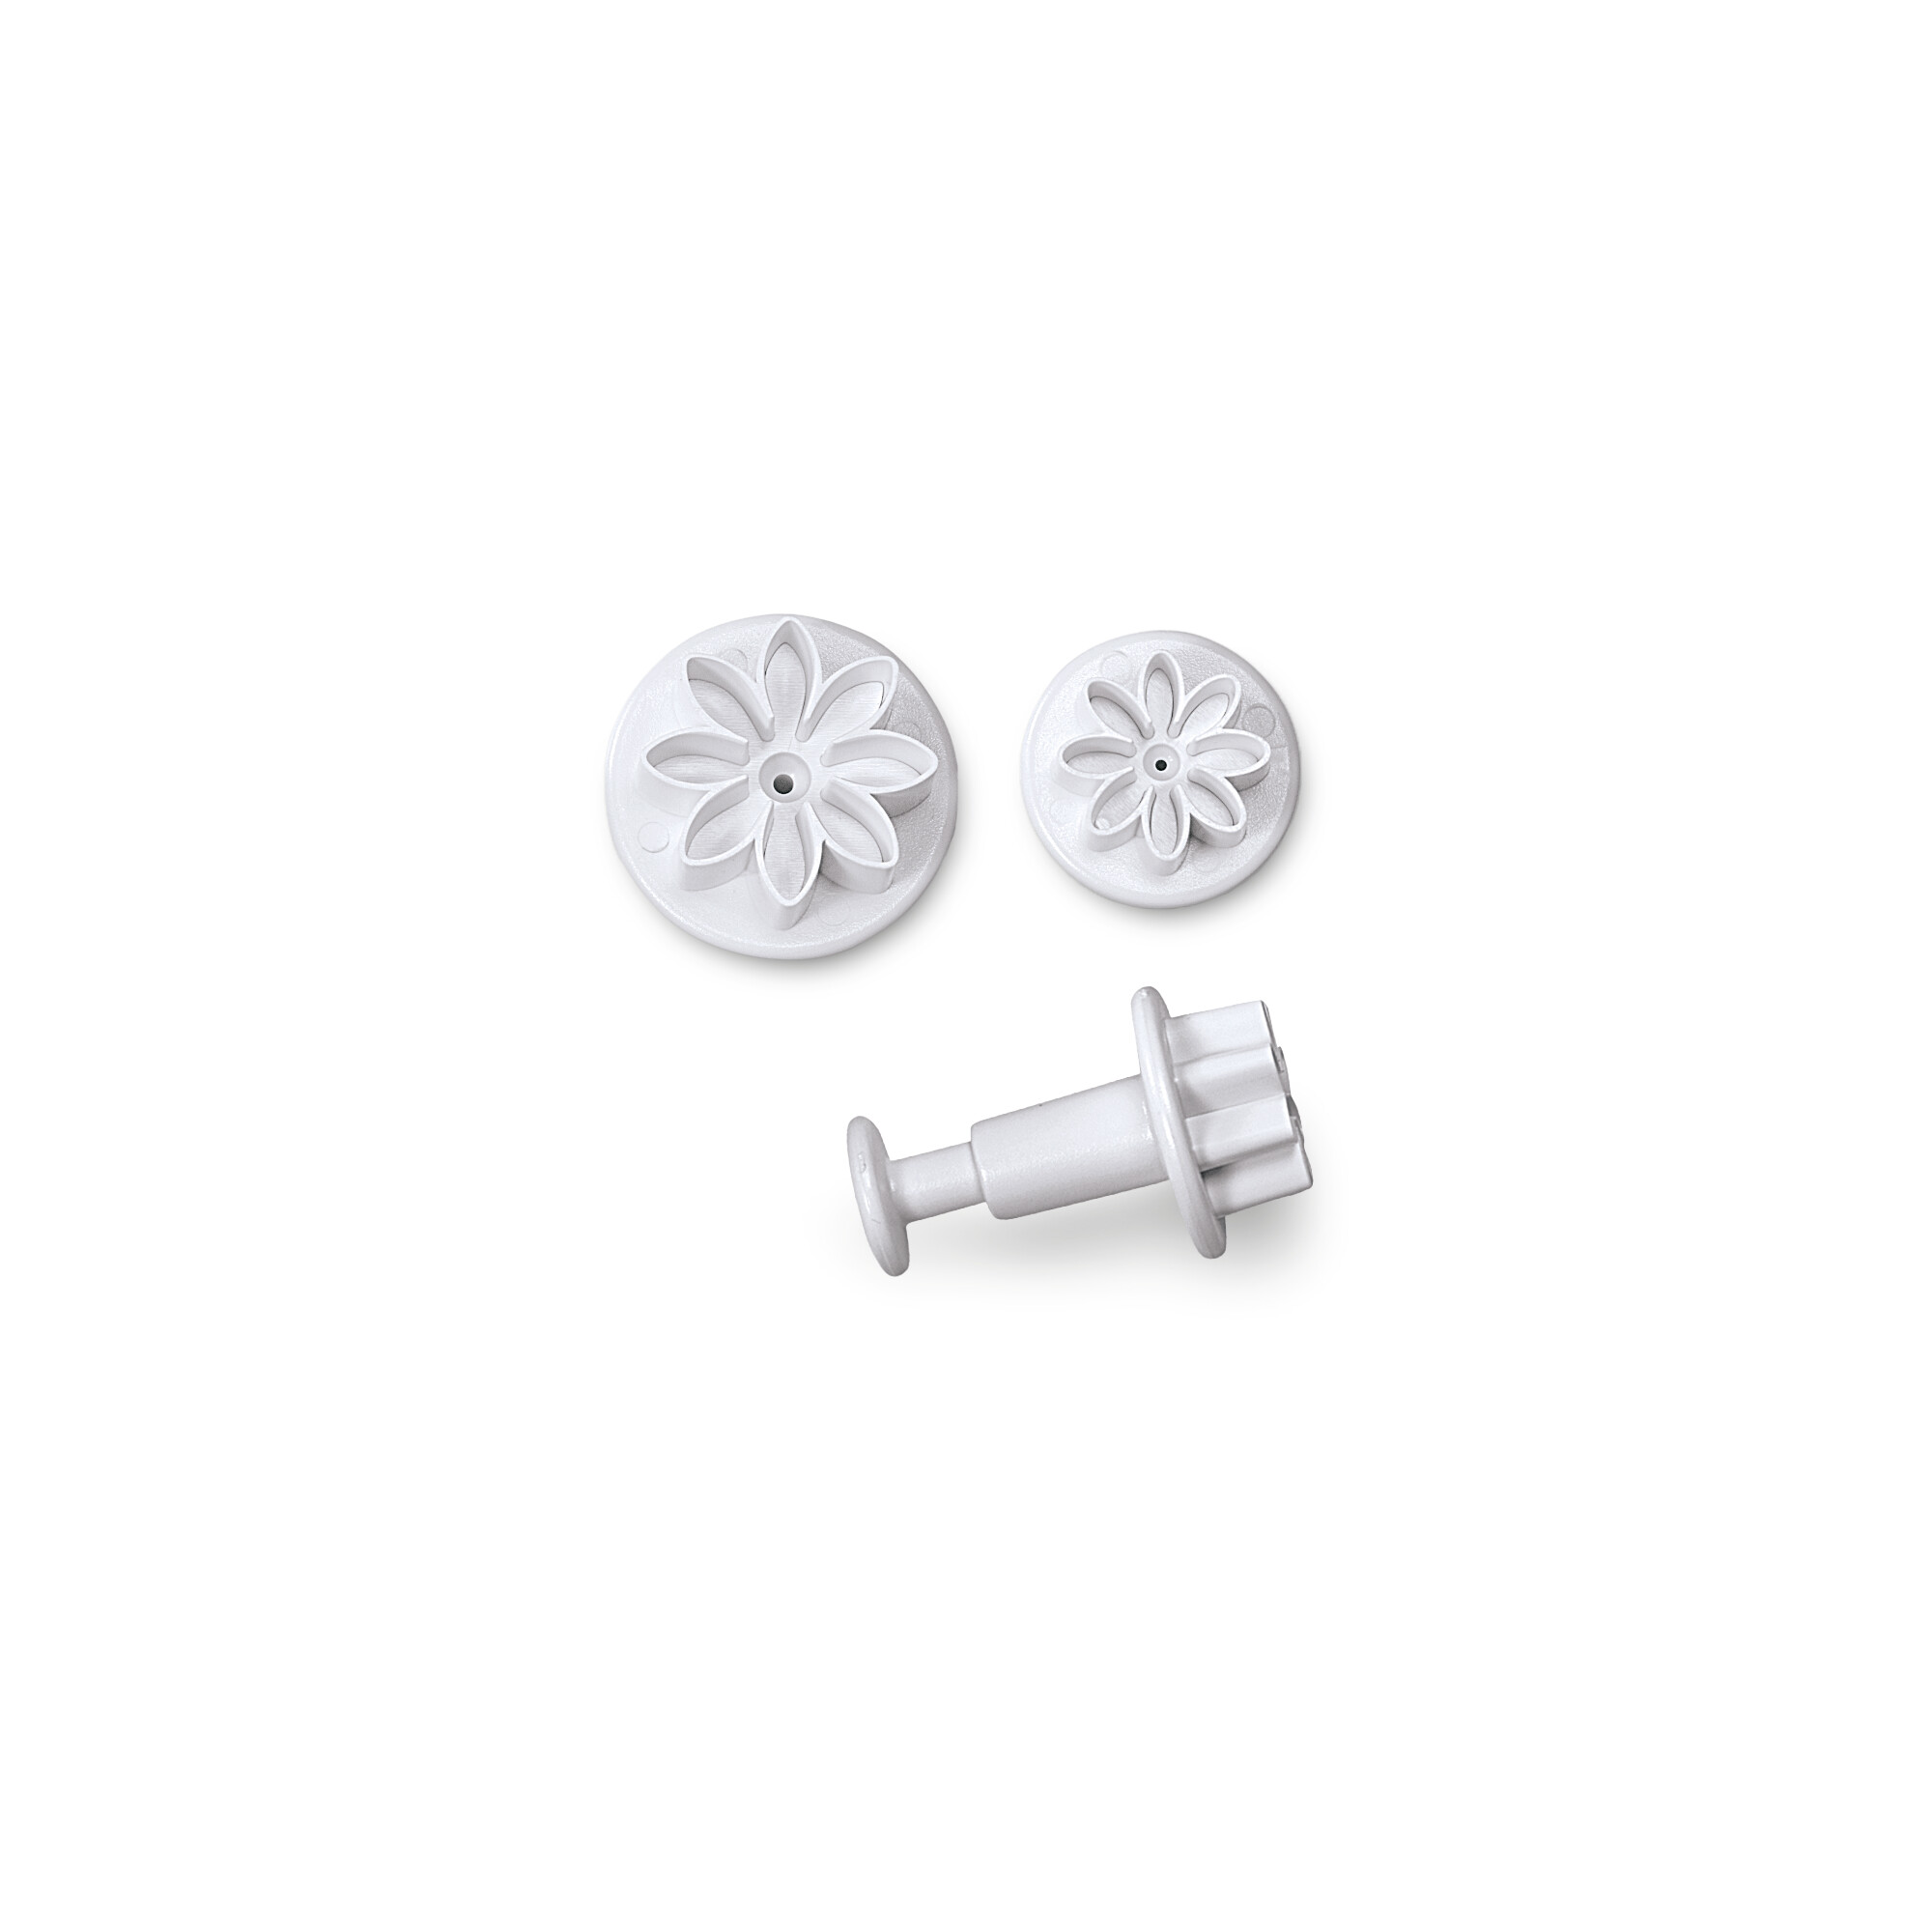 Professional cutter with ejector - Daisy - Set, 2 parts